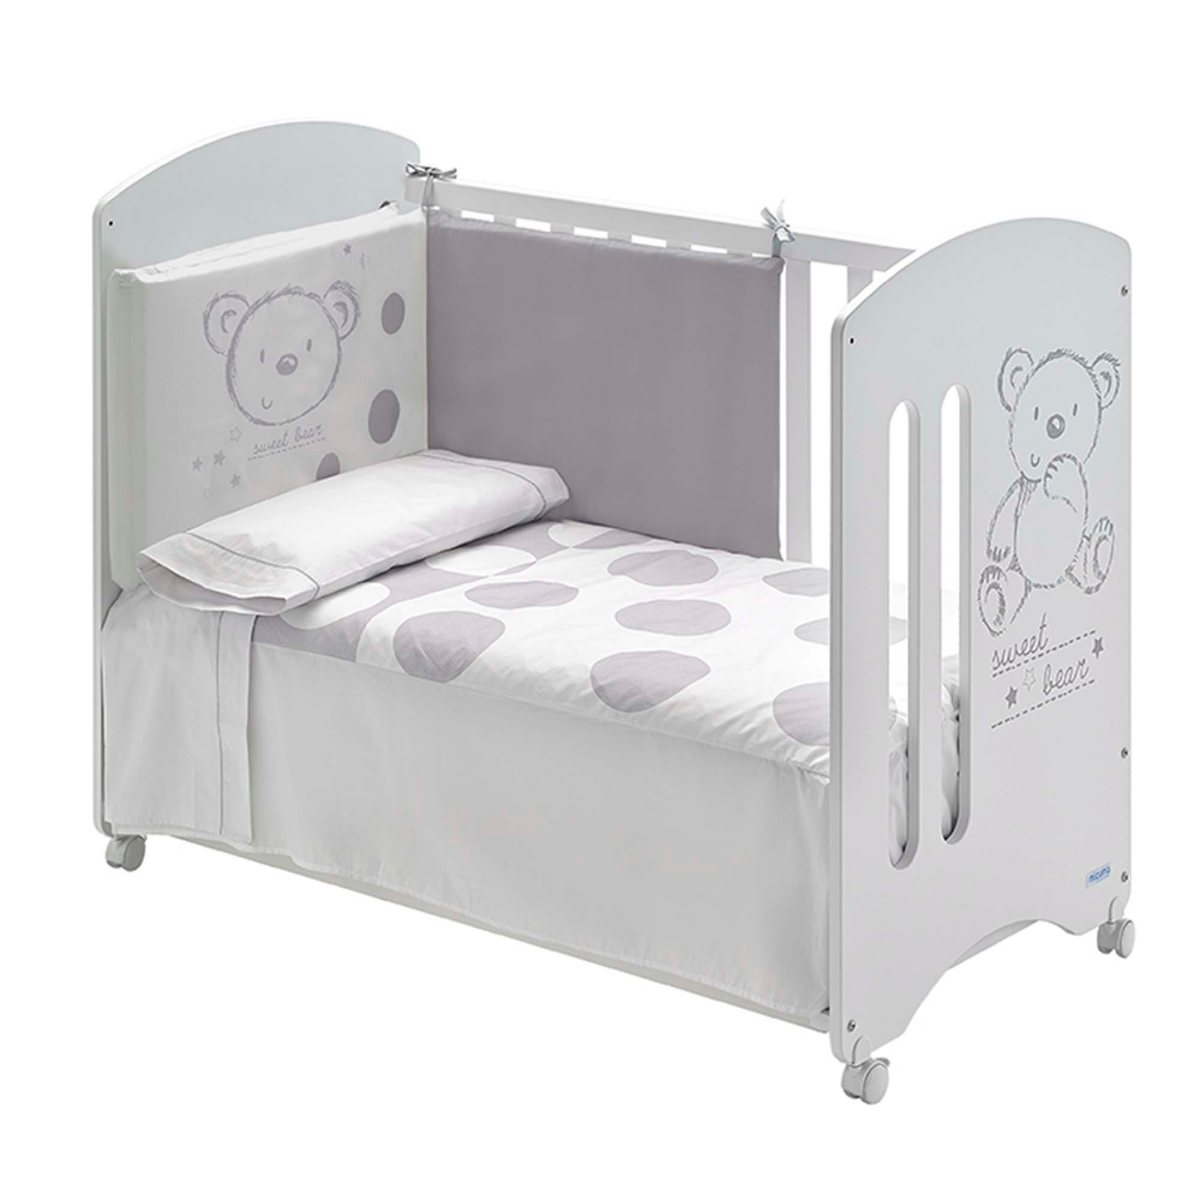 Muebles Bustillo Cuna Sweet Bear Micuna # Muebles Bosques Sostenibles